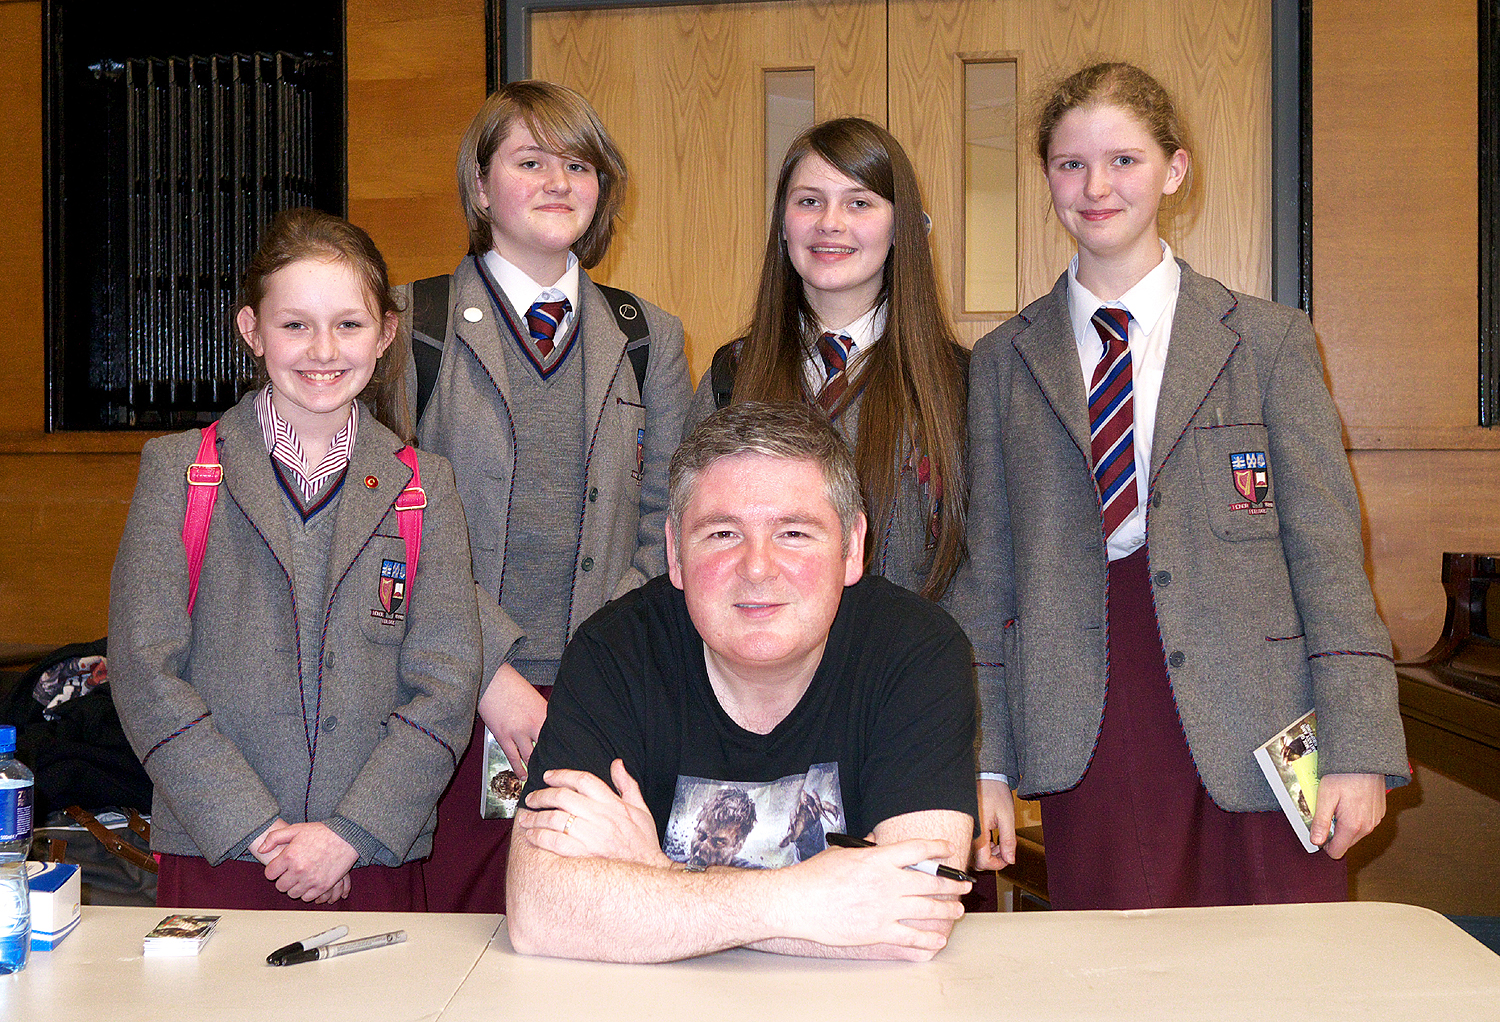 On Monday 7th April 2014 nine students travelled to Methodist College to see the author Darren Shan.  A popular writer of teenage horror fiction, Darren was in Belfast to promote his  Zom-B   series of books. Although full of blood and gore, the book  s combine clever plots with thought provoking moral questions such as dealing with racism and abuse of power.   After an enthralling talk, the pupils got to meet Darren and get books signed by him.